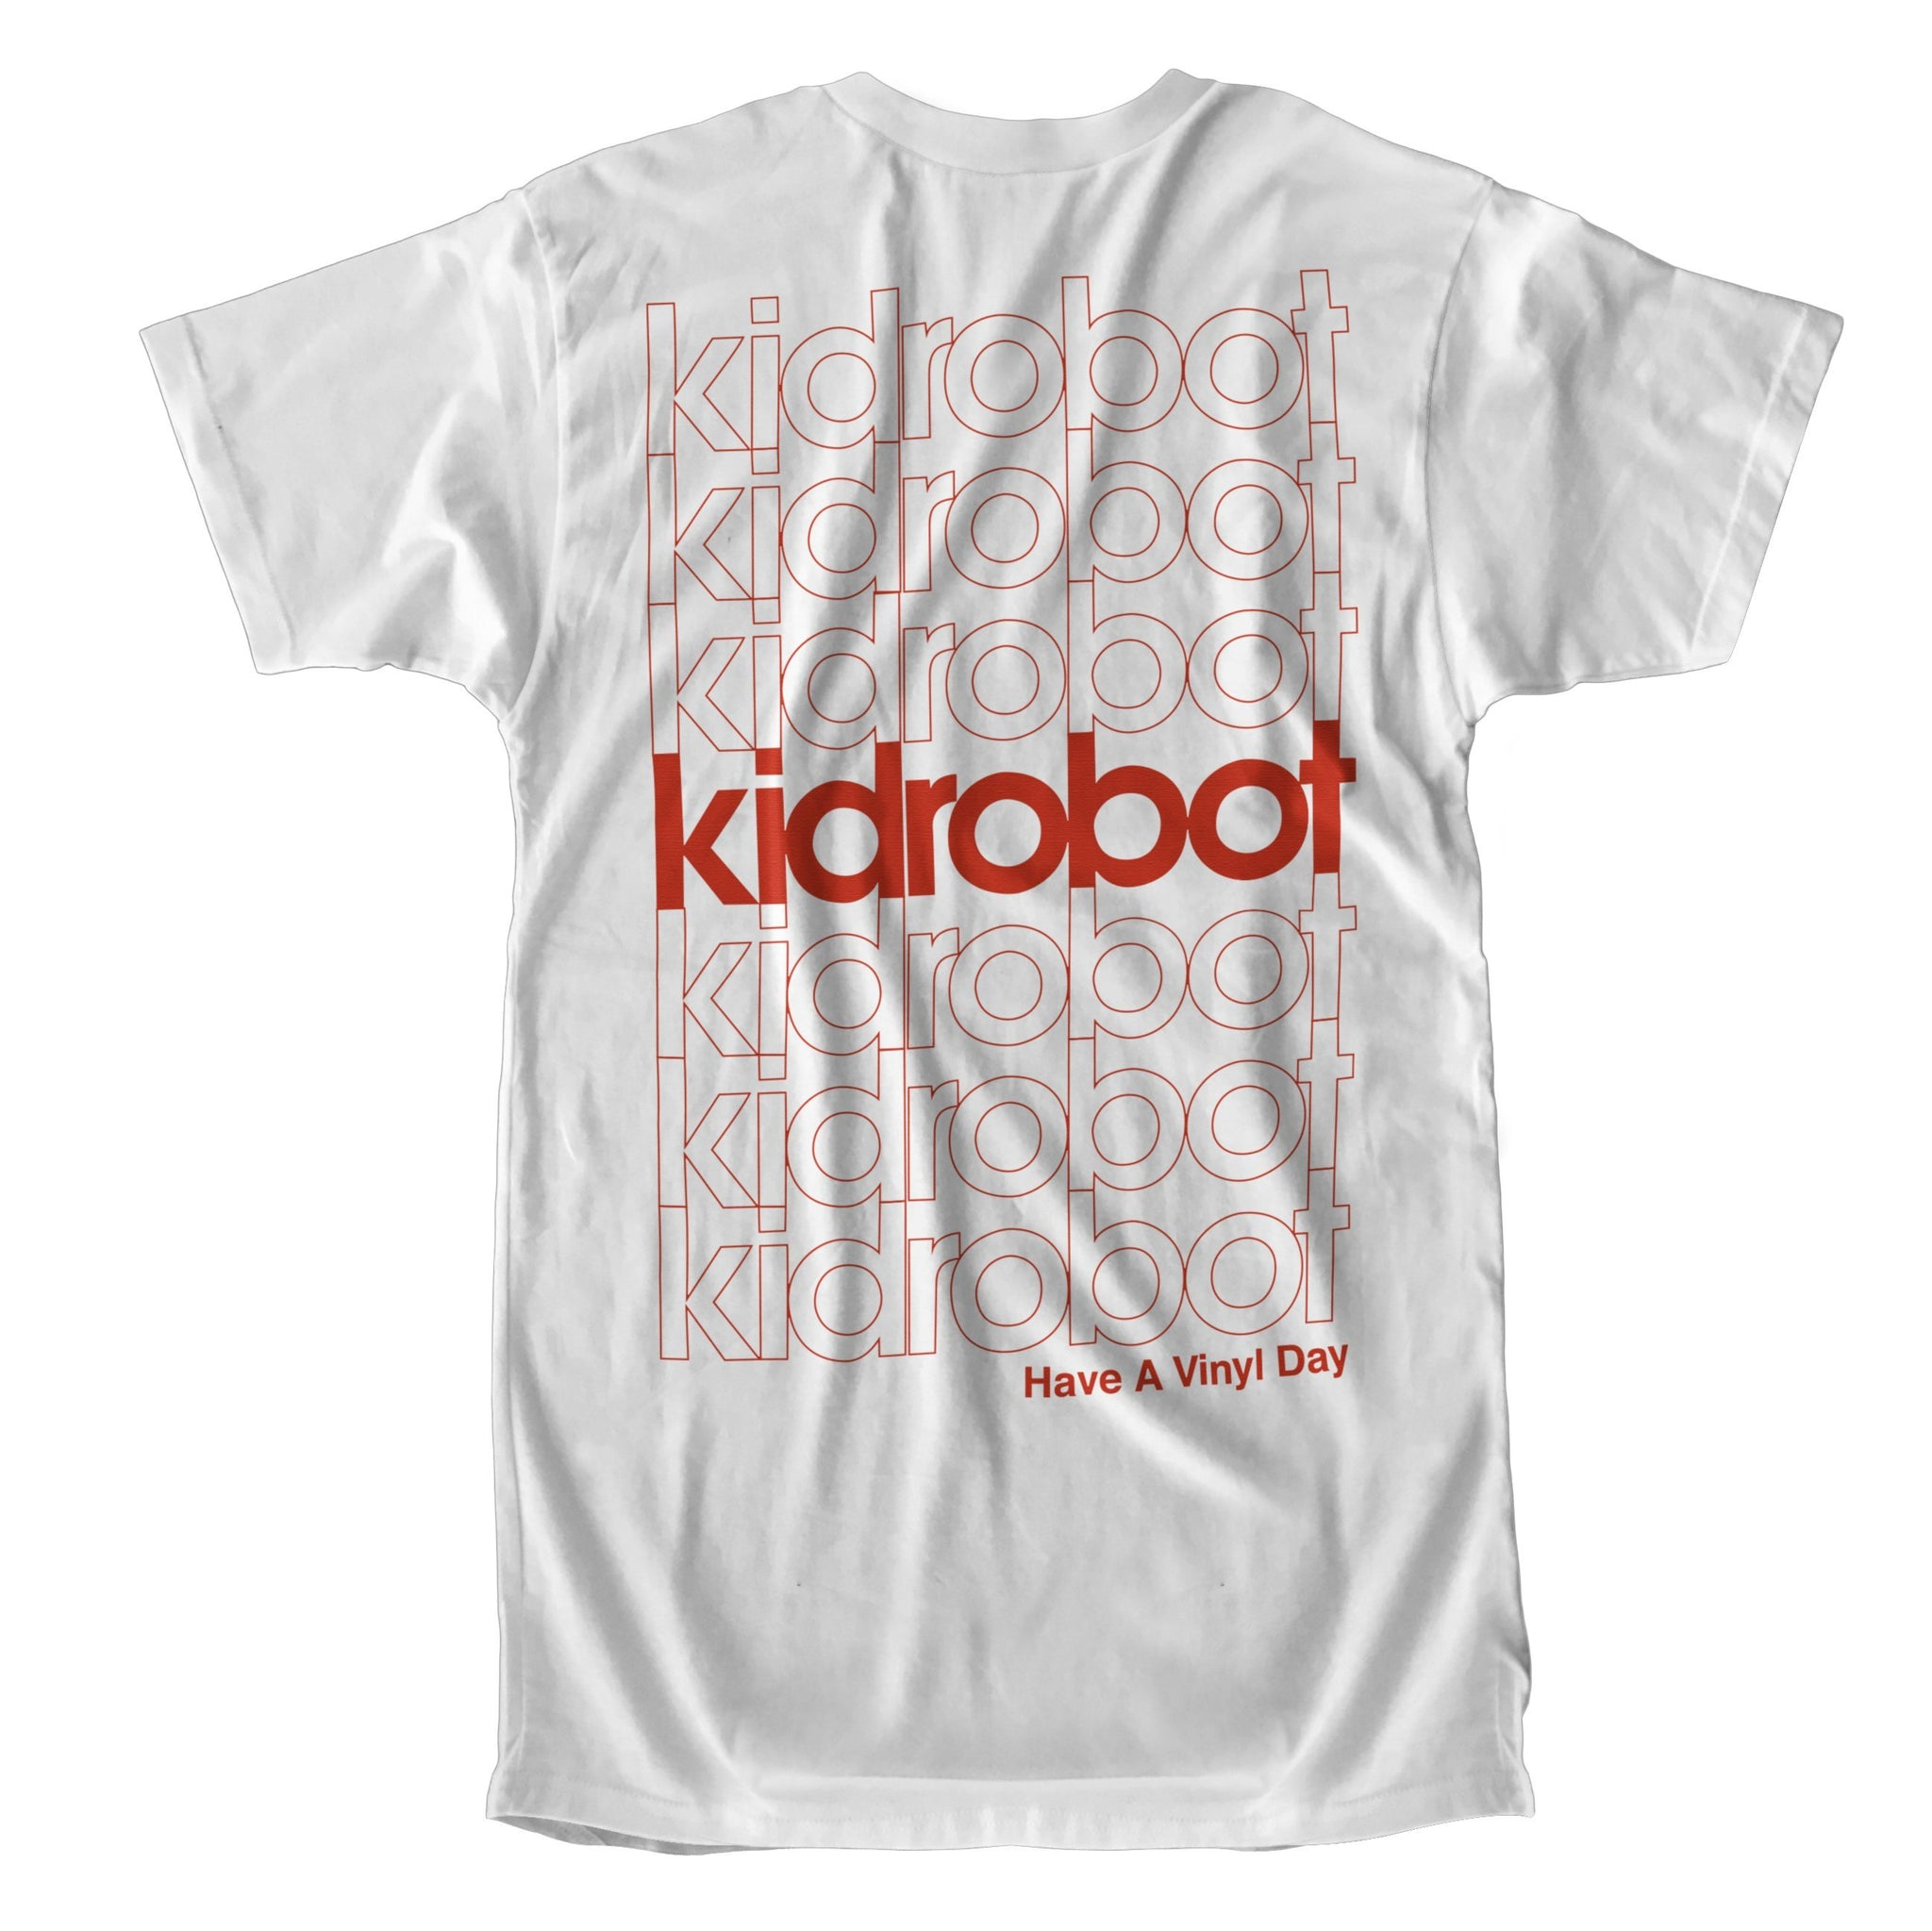 Cotton - Limited Edition Kidrobot Have A Vinyl Day White Pocket T-Shirt (S-XL)